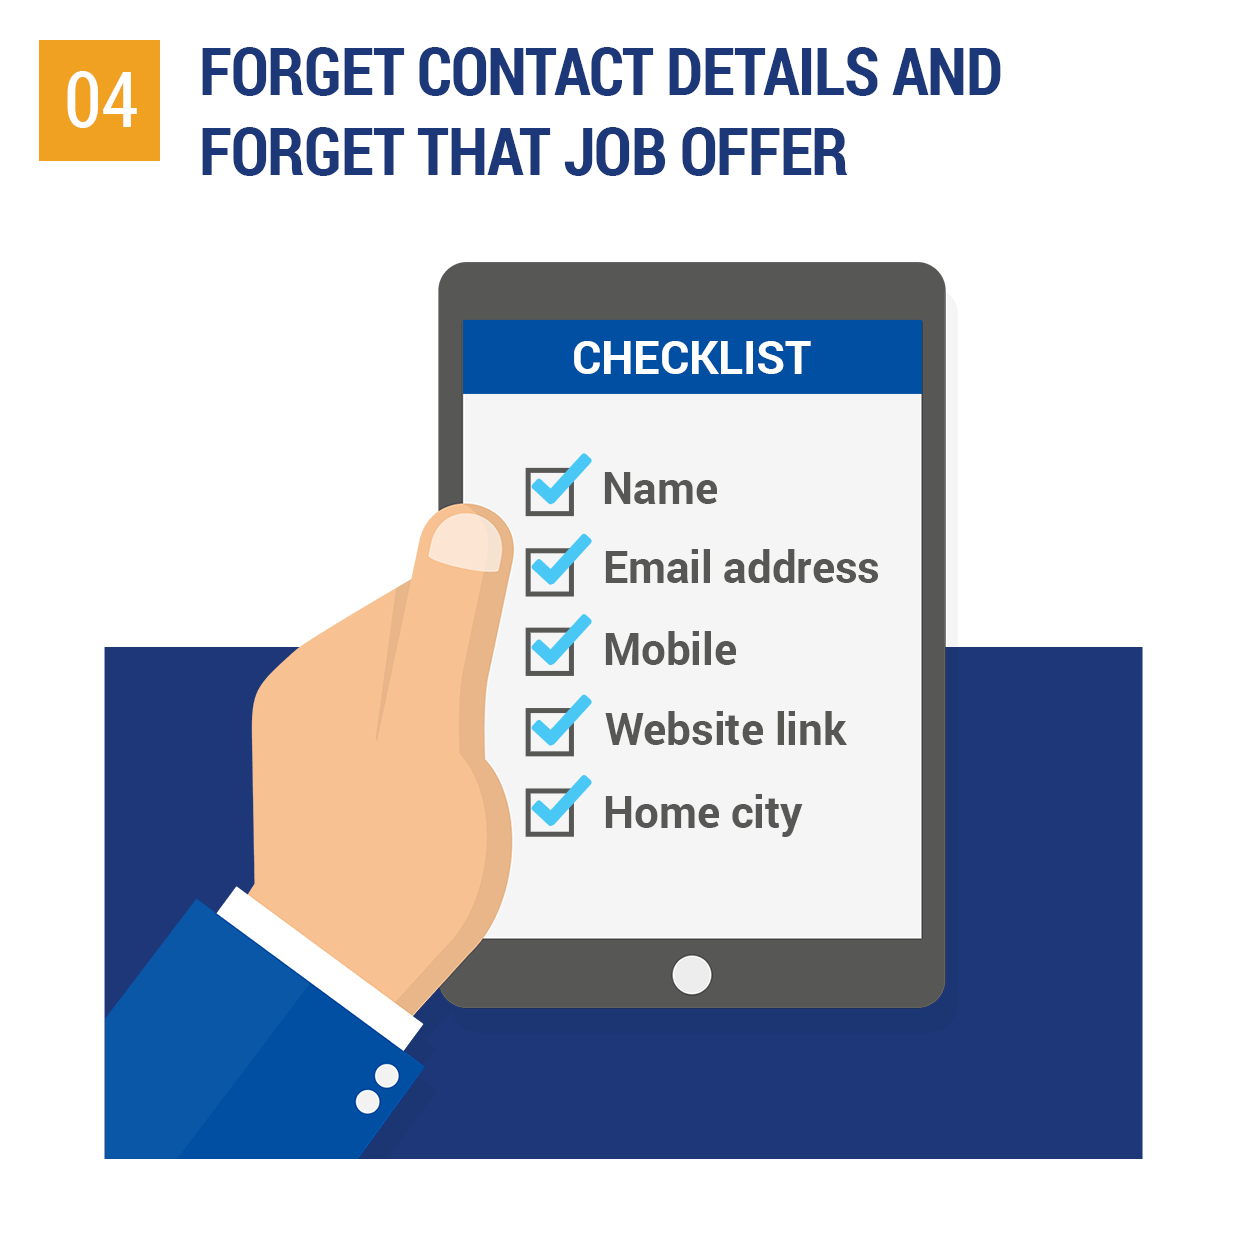 Forget contact details and forget that job offer